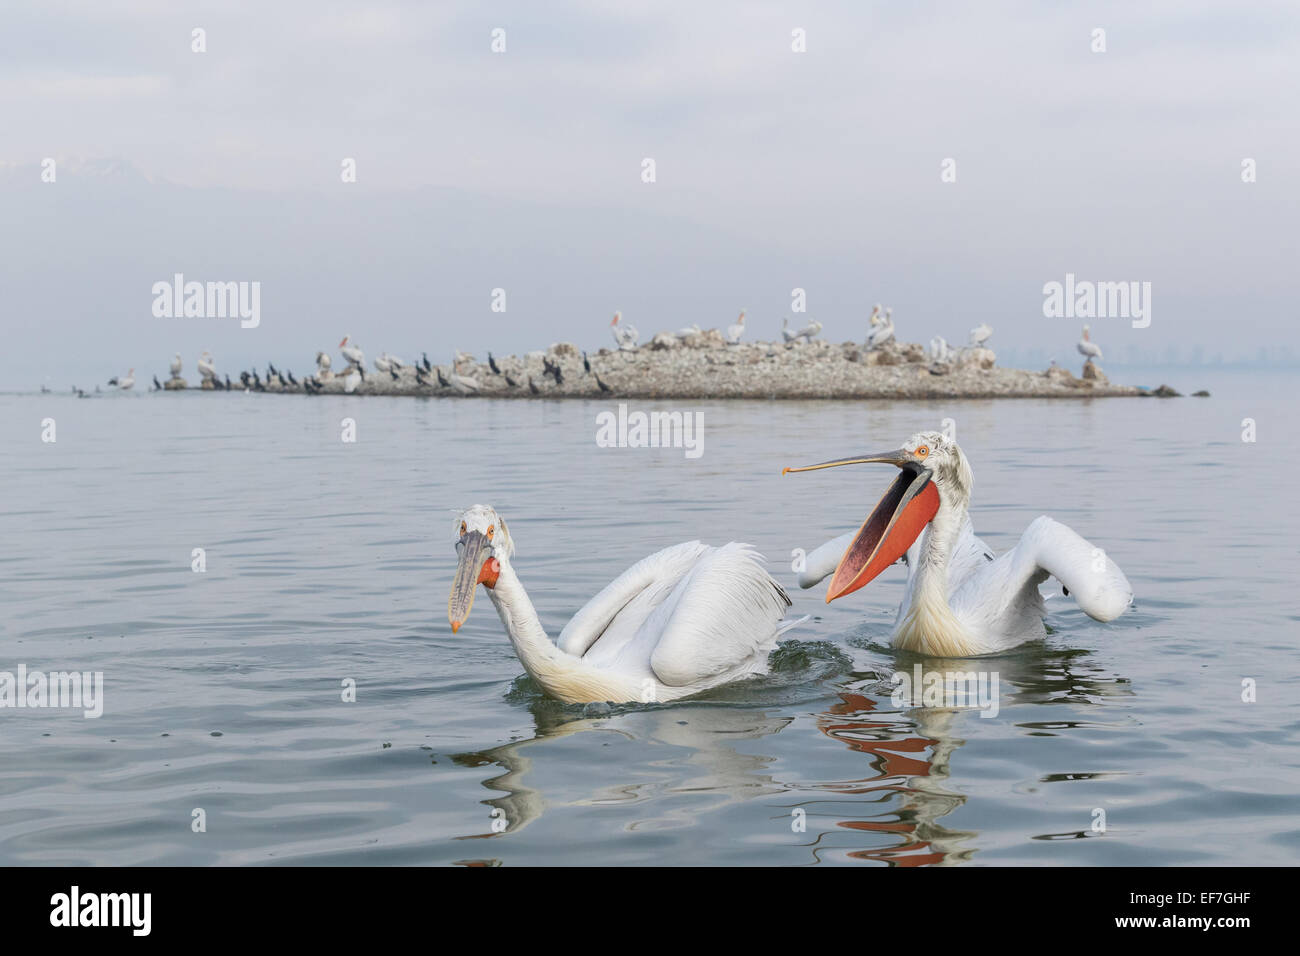 Two Dalmatian Pelicans (Pelecanus crispus) on Lake Kerkini in Northern Greece, one is gesturning to the other with - Stock Image